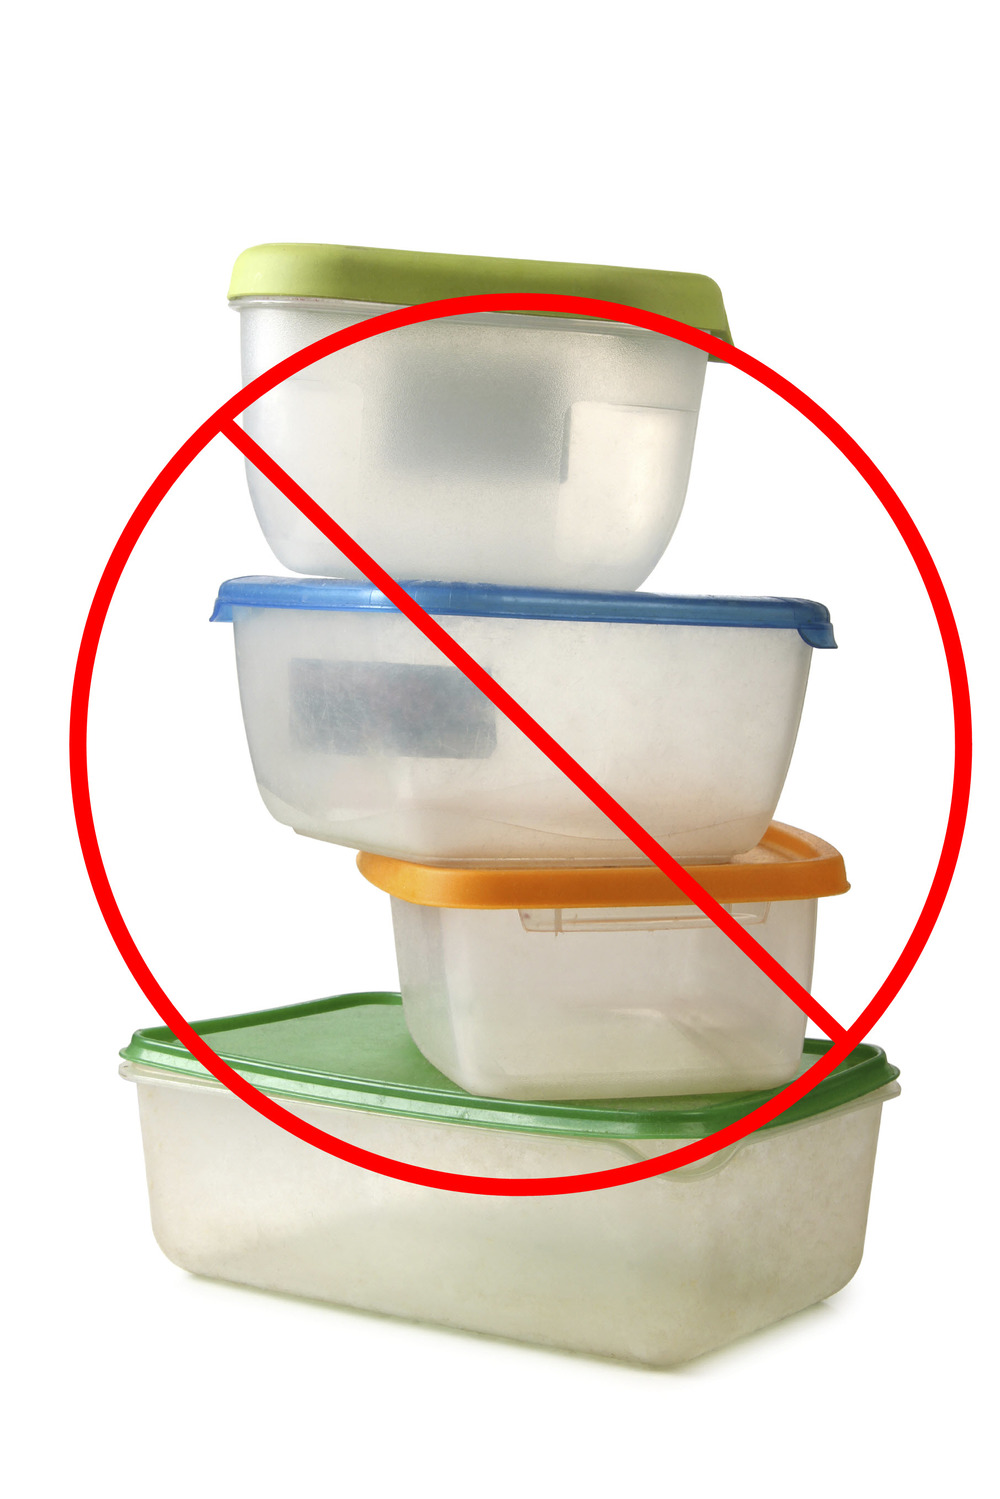 Say-No-To-Plastic-tupperware-meal-prep-containers